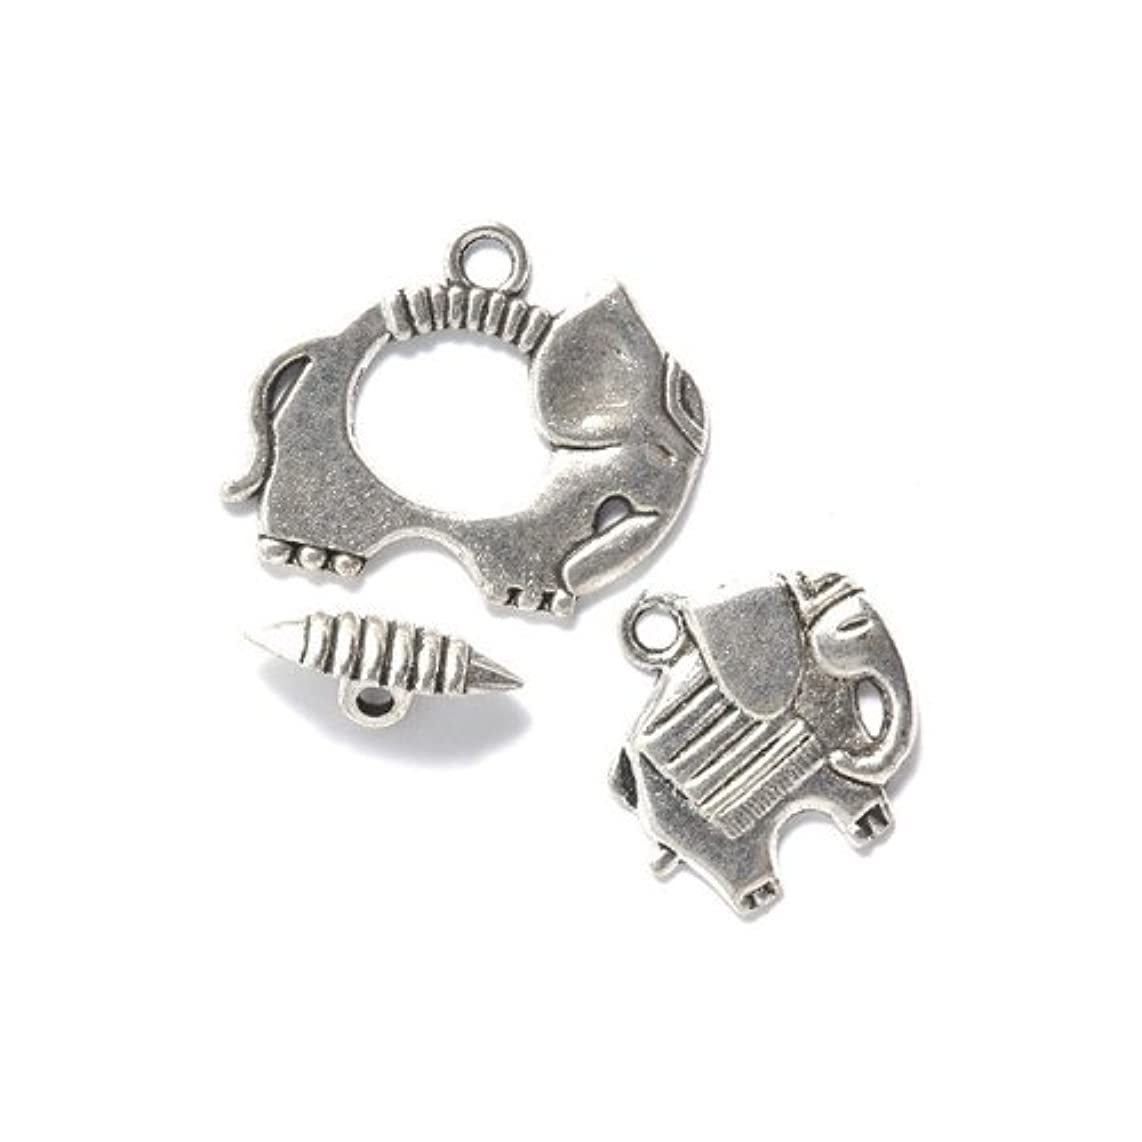 Shipwreck Beads Zinc Alloy Toggle Clasp with Charm, Elephant, 25mm, Silver, 15-Pack